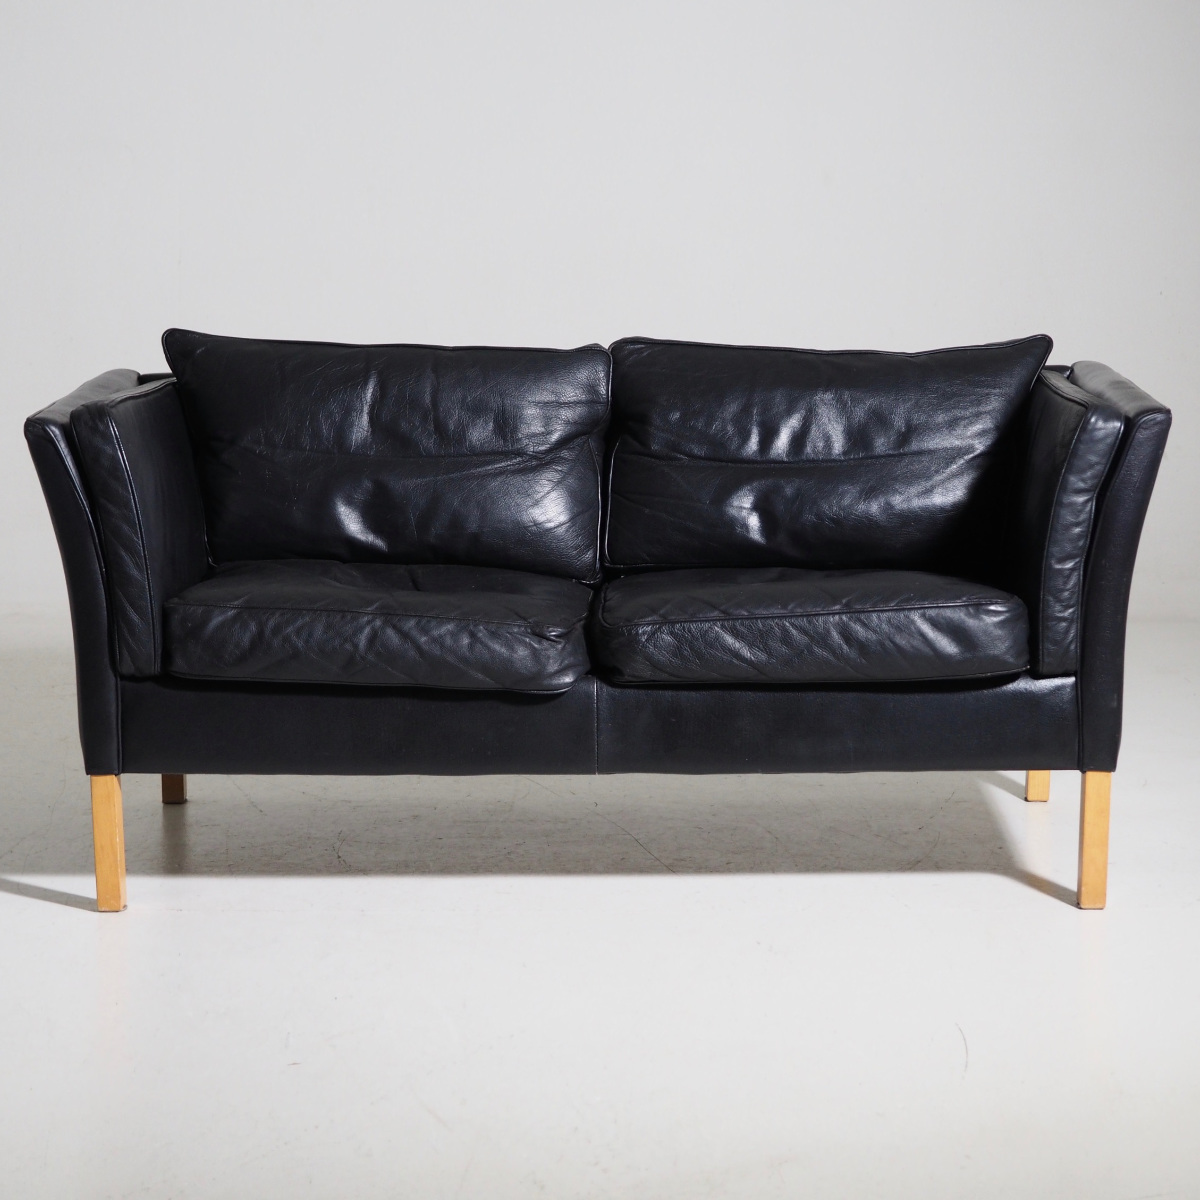 Sofa in black leather, circa 1970. - € 1.100